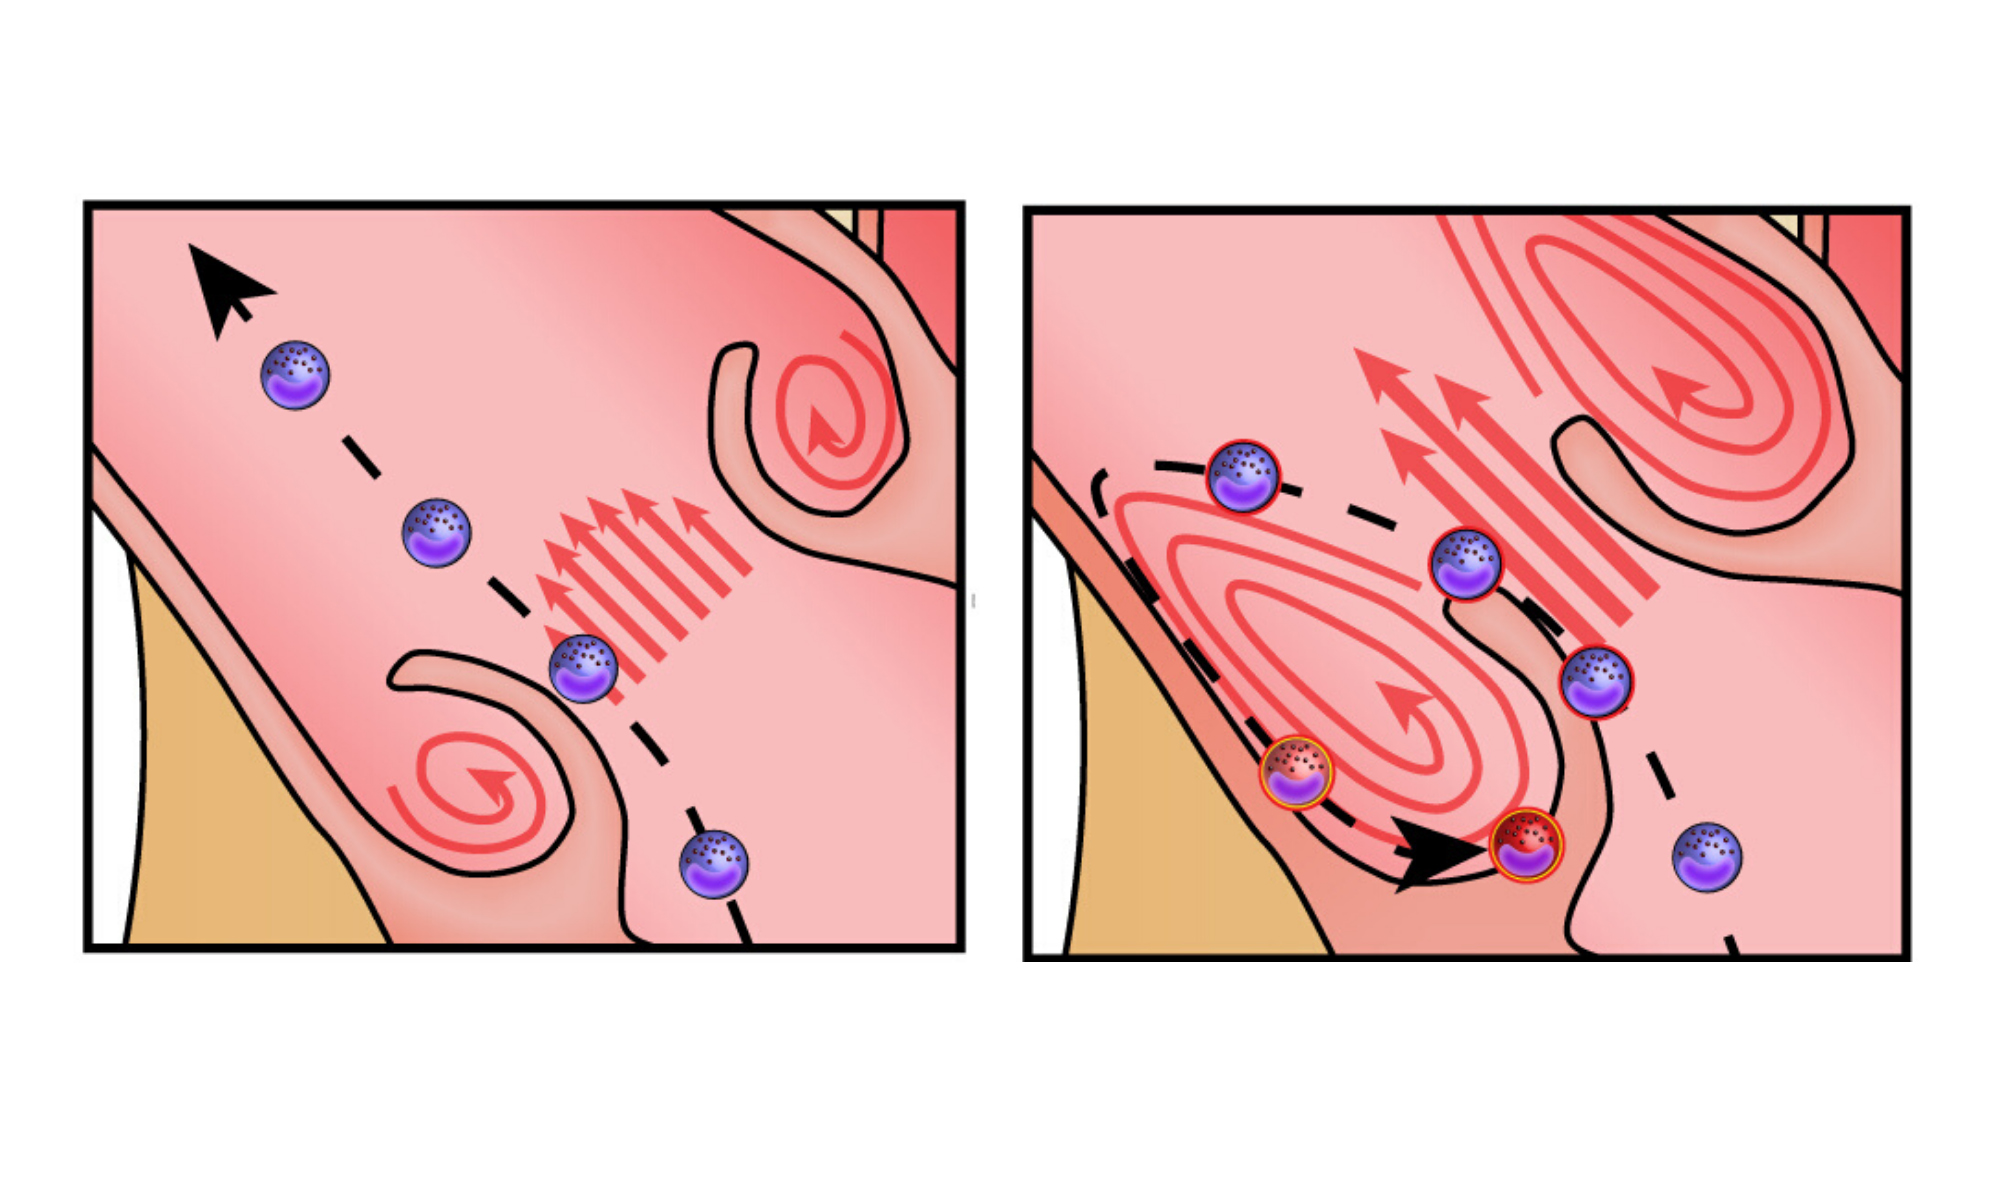 Illustration showing the path of immune cells through a healthy aortic valve (left) and stenotic aortic valve (right).